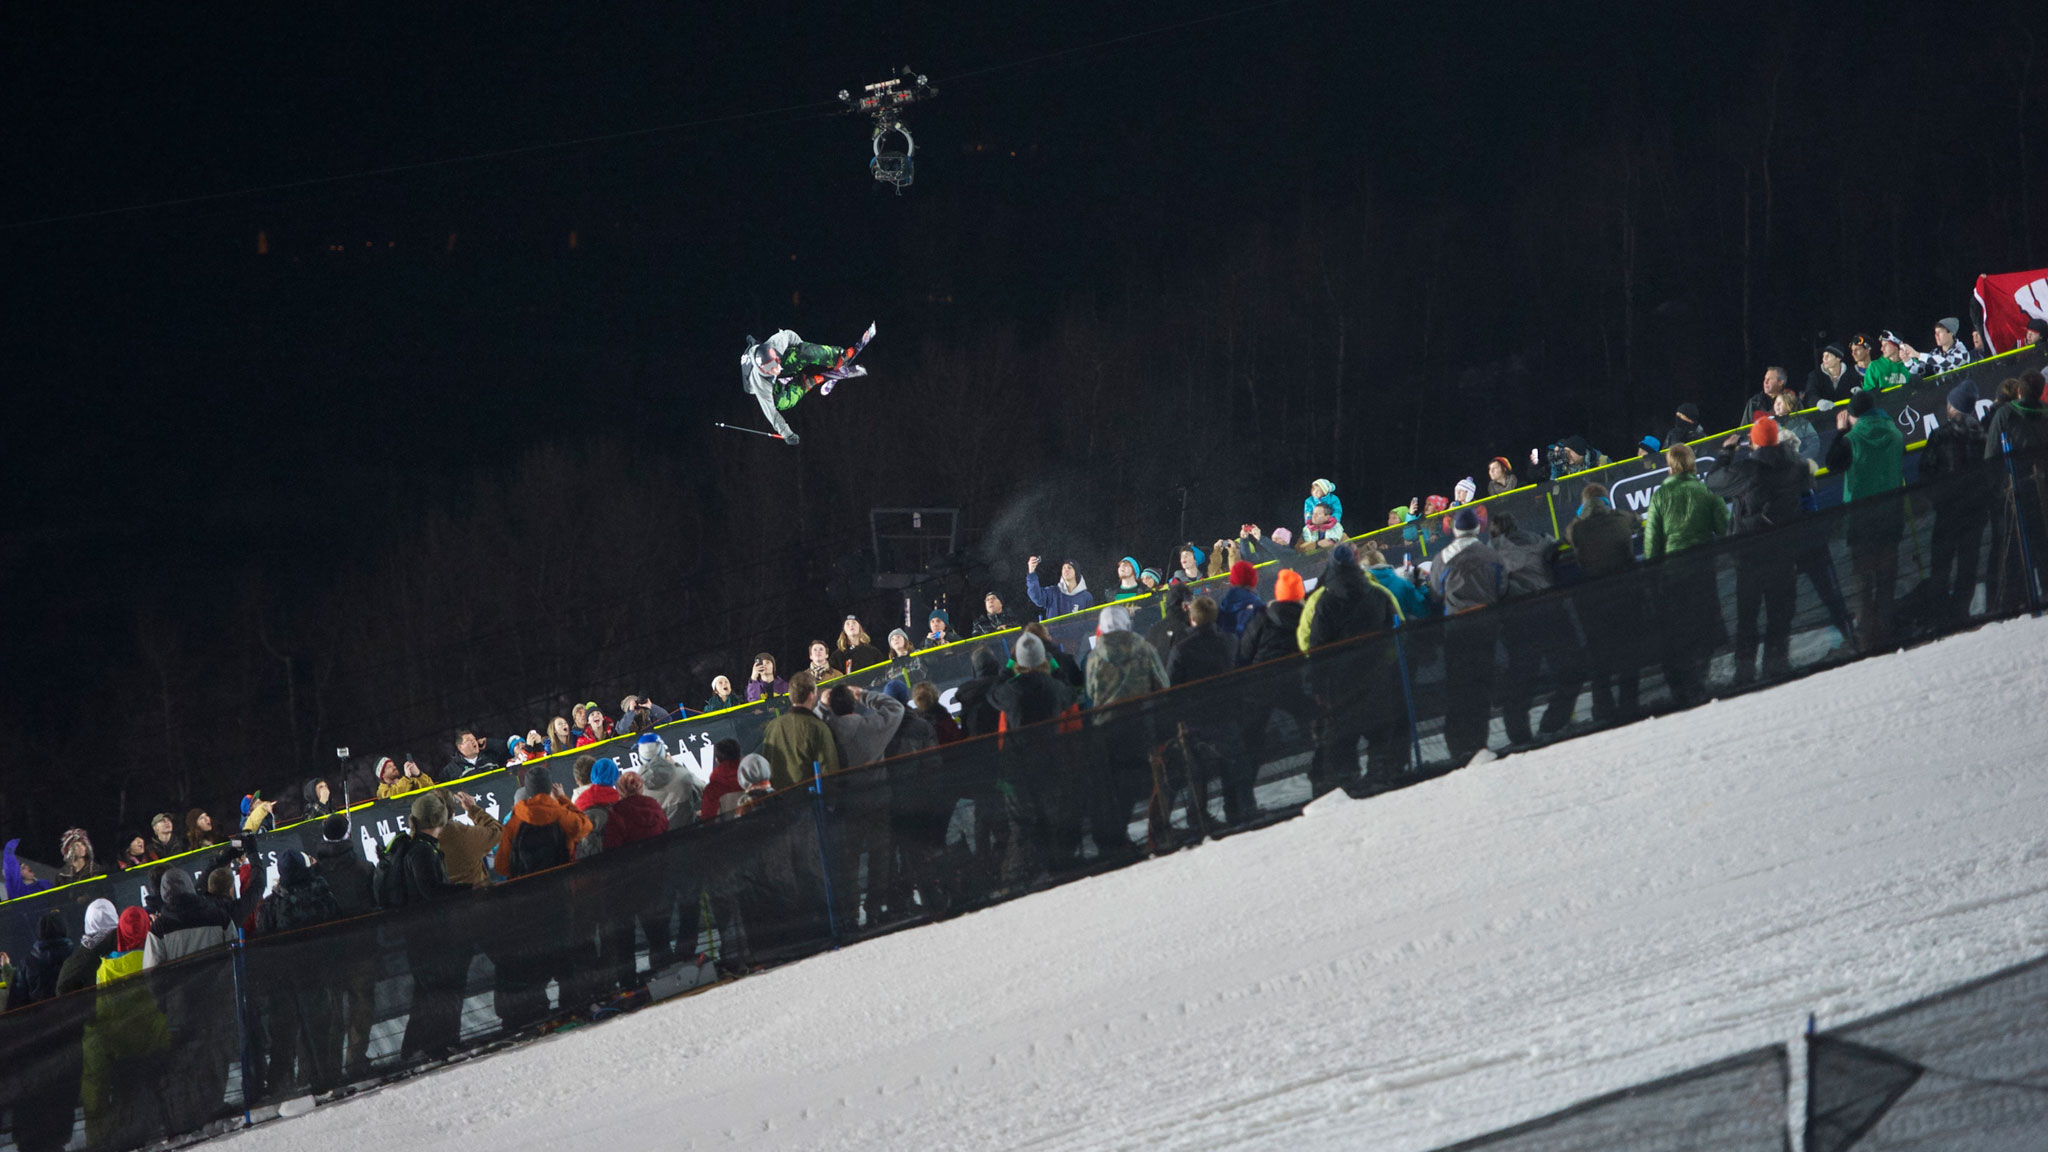 Torin Yater-Wallace got the Ski SuperPipe silver medal at X Games Aspen 2013. He then went on to win gold at X Games Tignes last March.